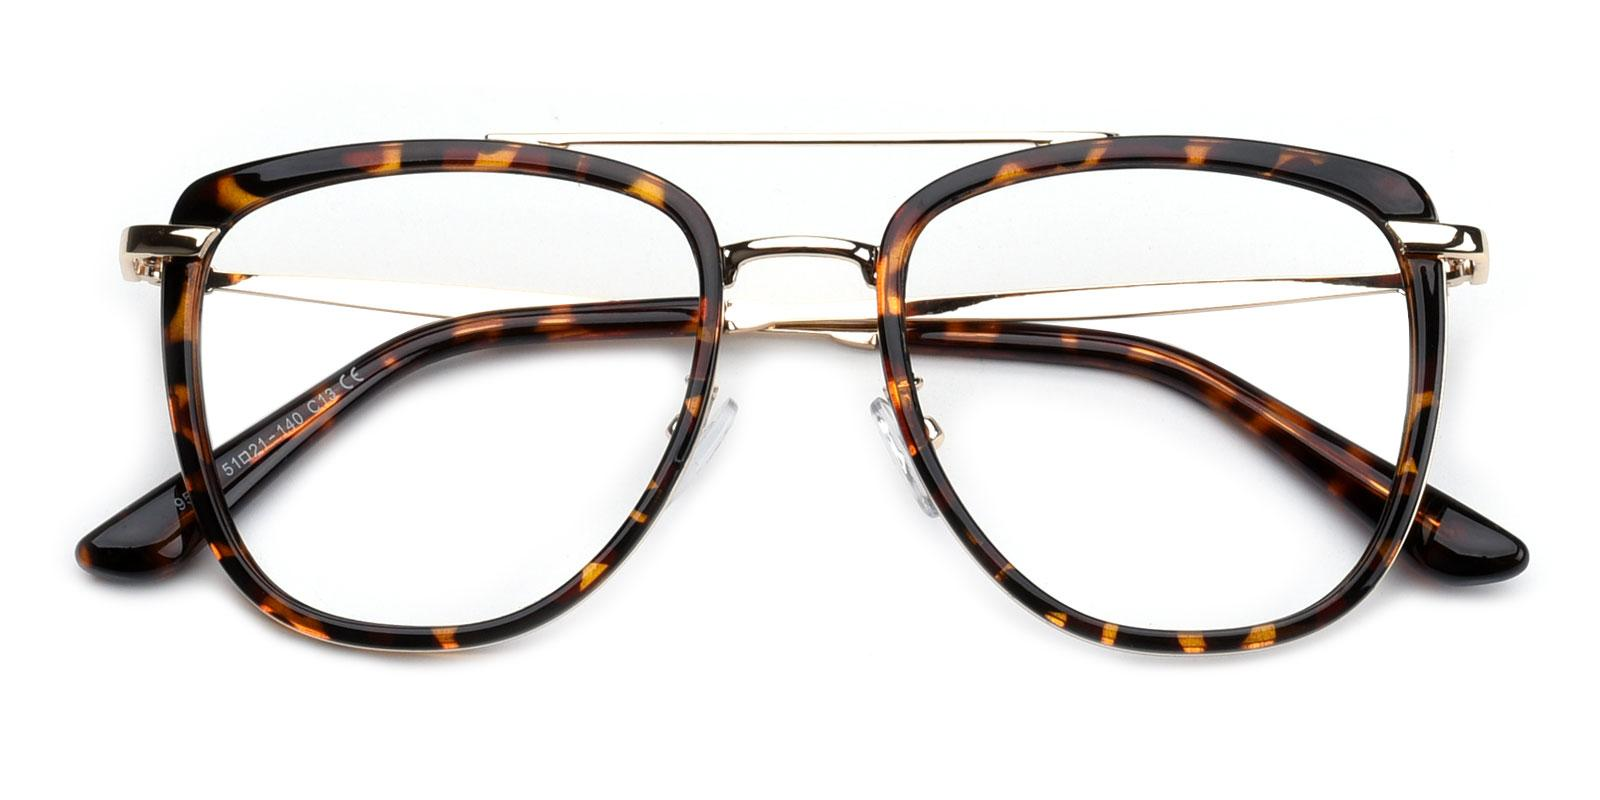 Bid-Leopard-Aviator-Combination-Eyeglasses-detail